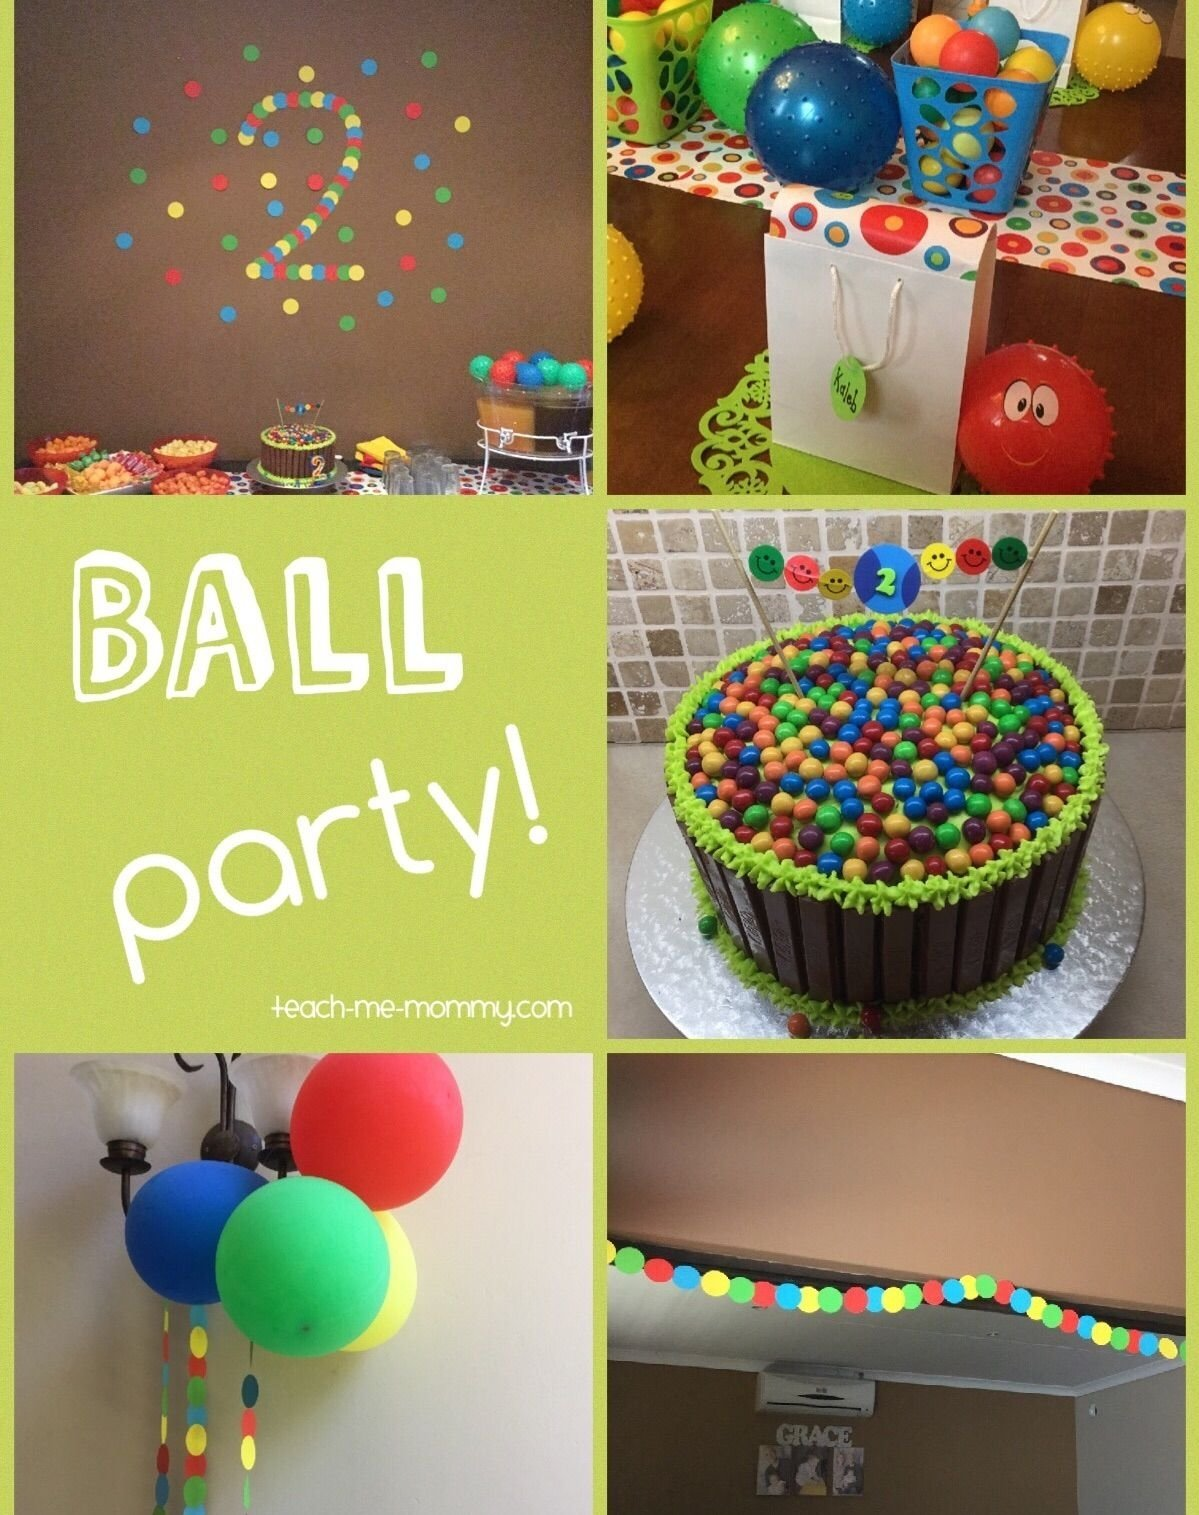 10 Unique 2 Year Old Party Ideas ball themed party for a 2 year old themed parties birthdays and 26 2021